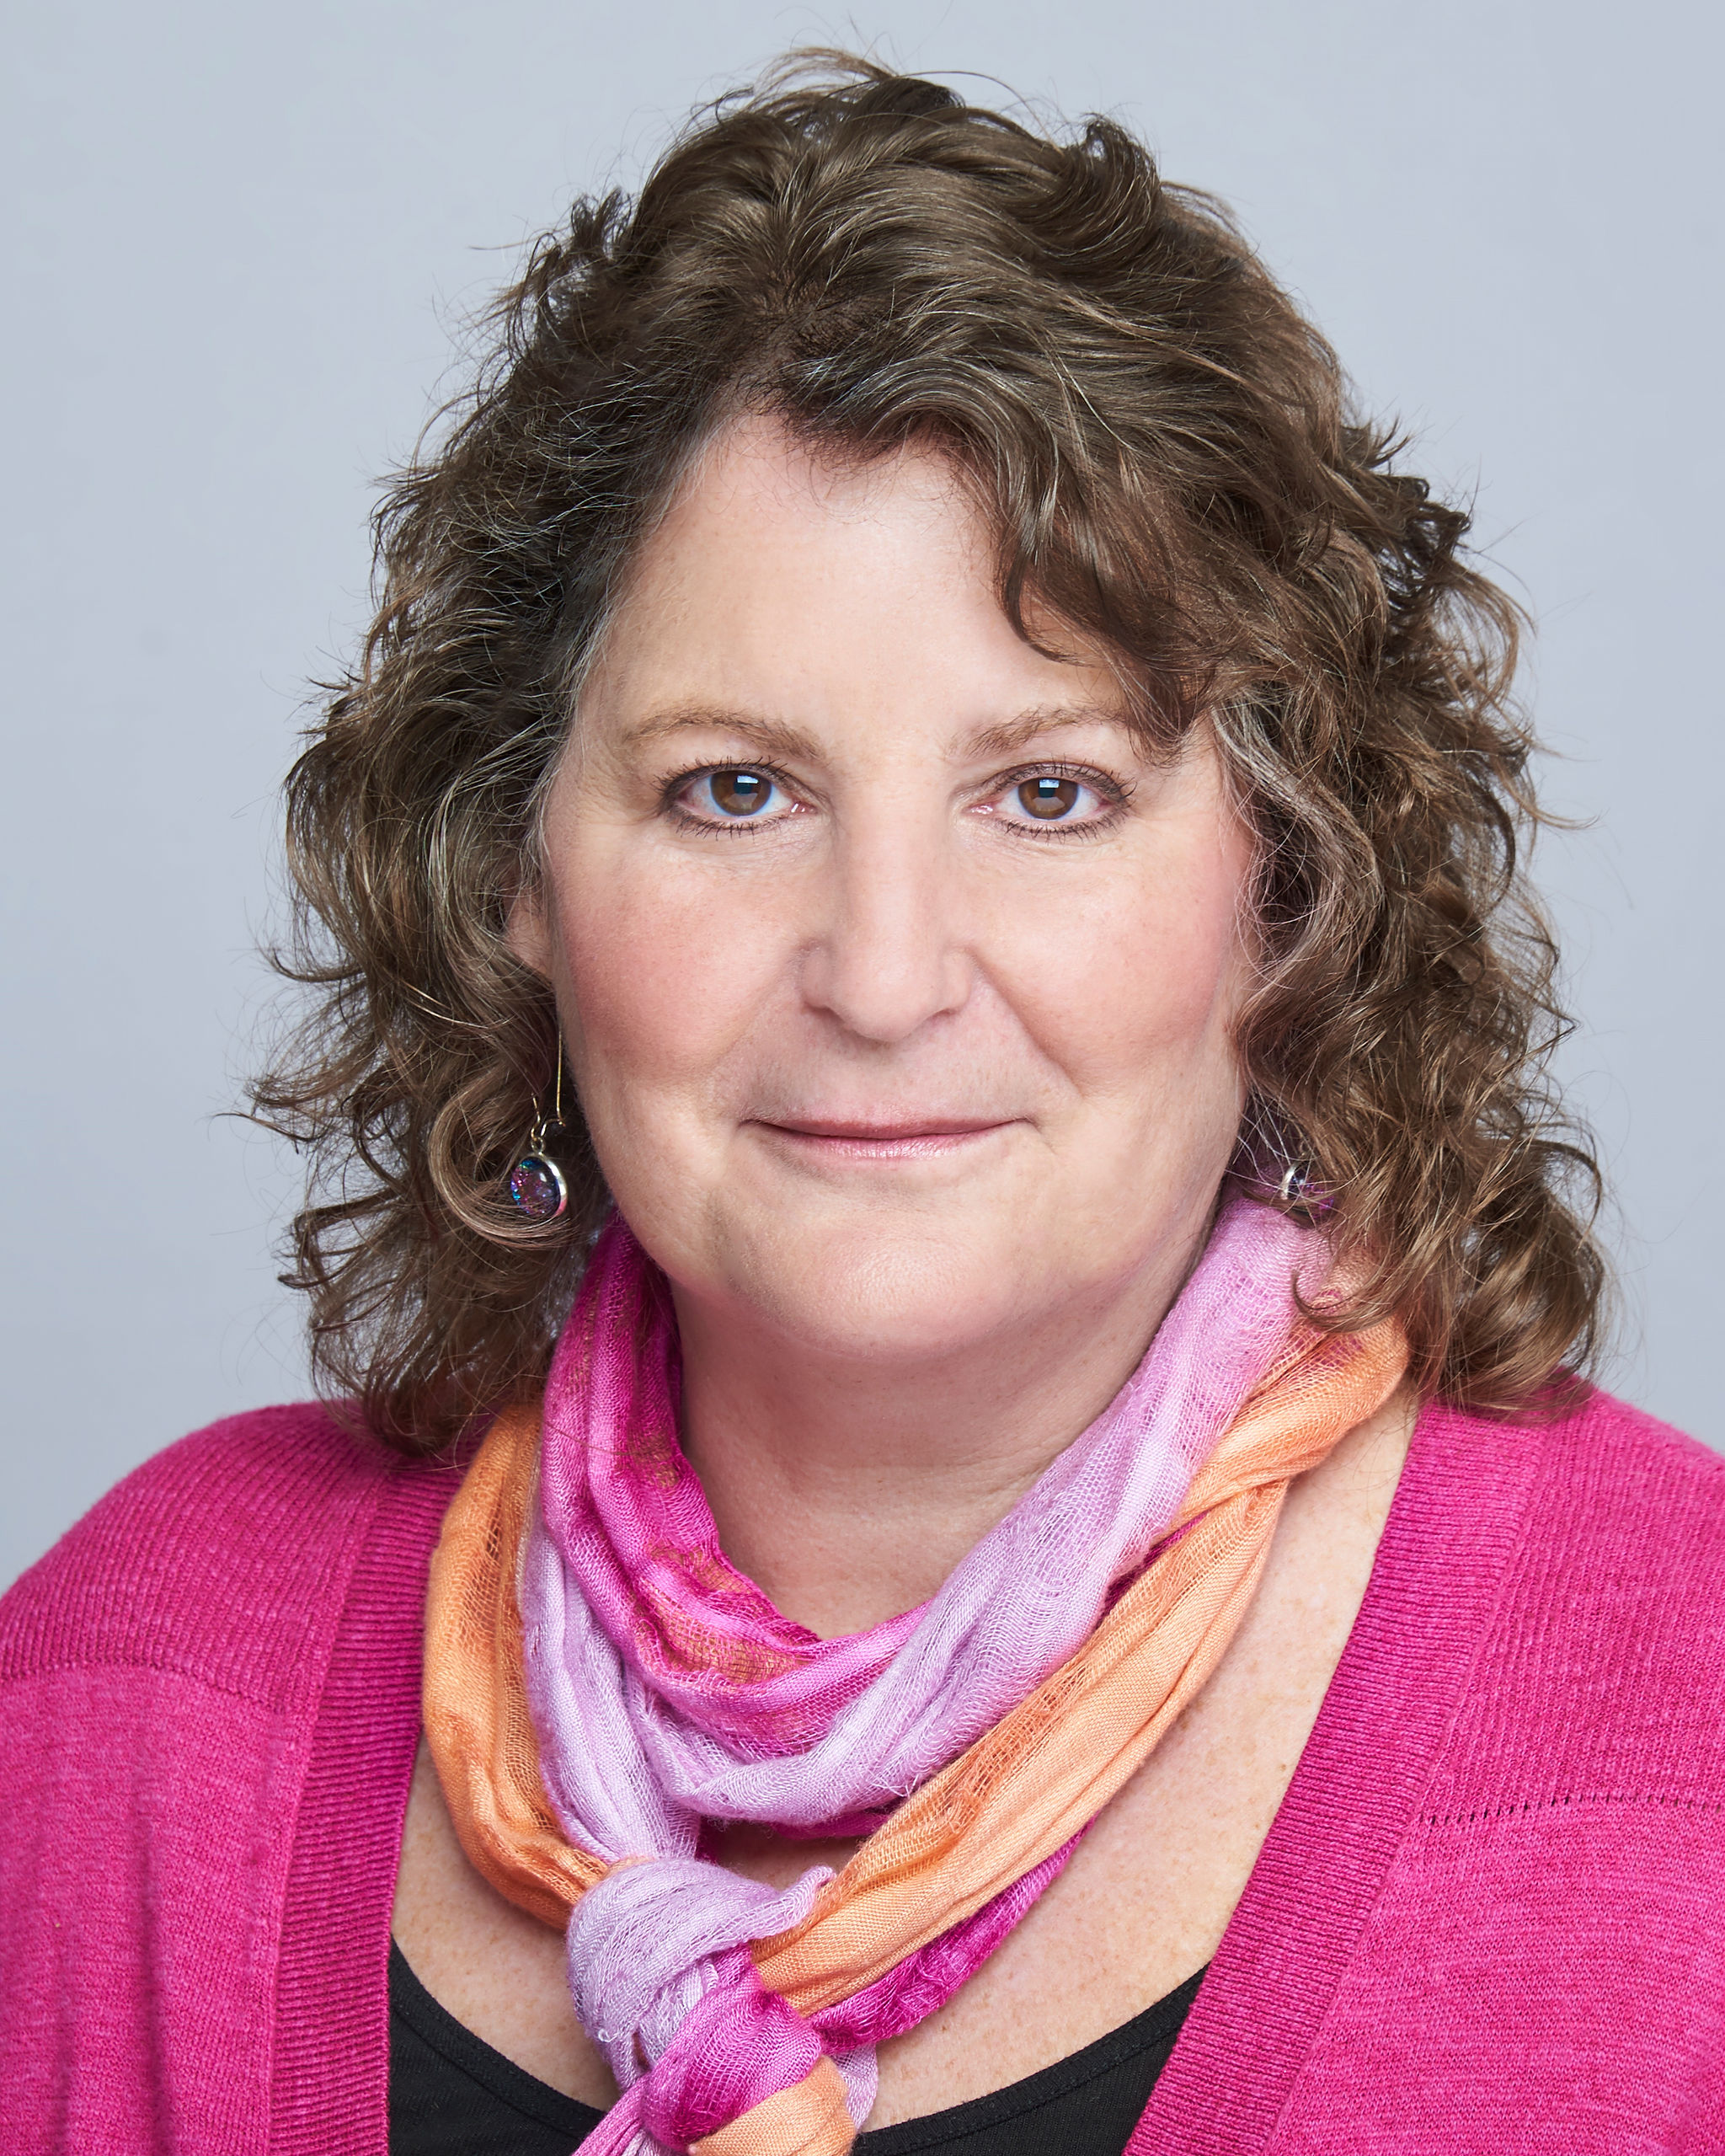 Judy Imber wearing a pink sweater over a black shirt. A pink and orange scarf.